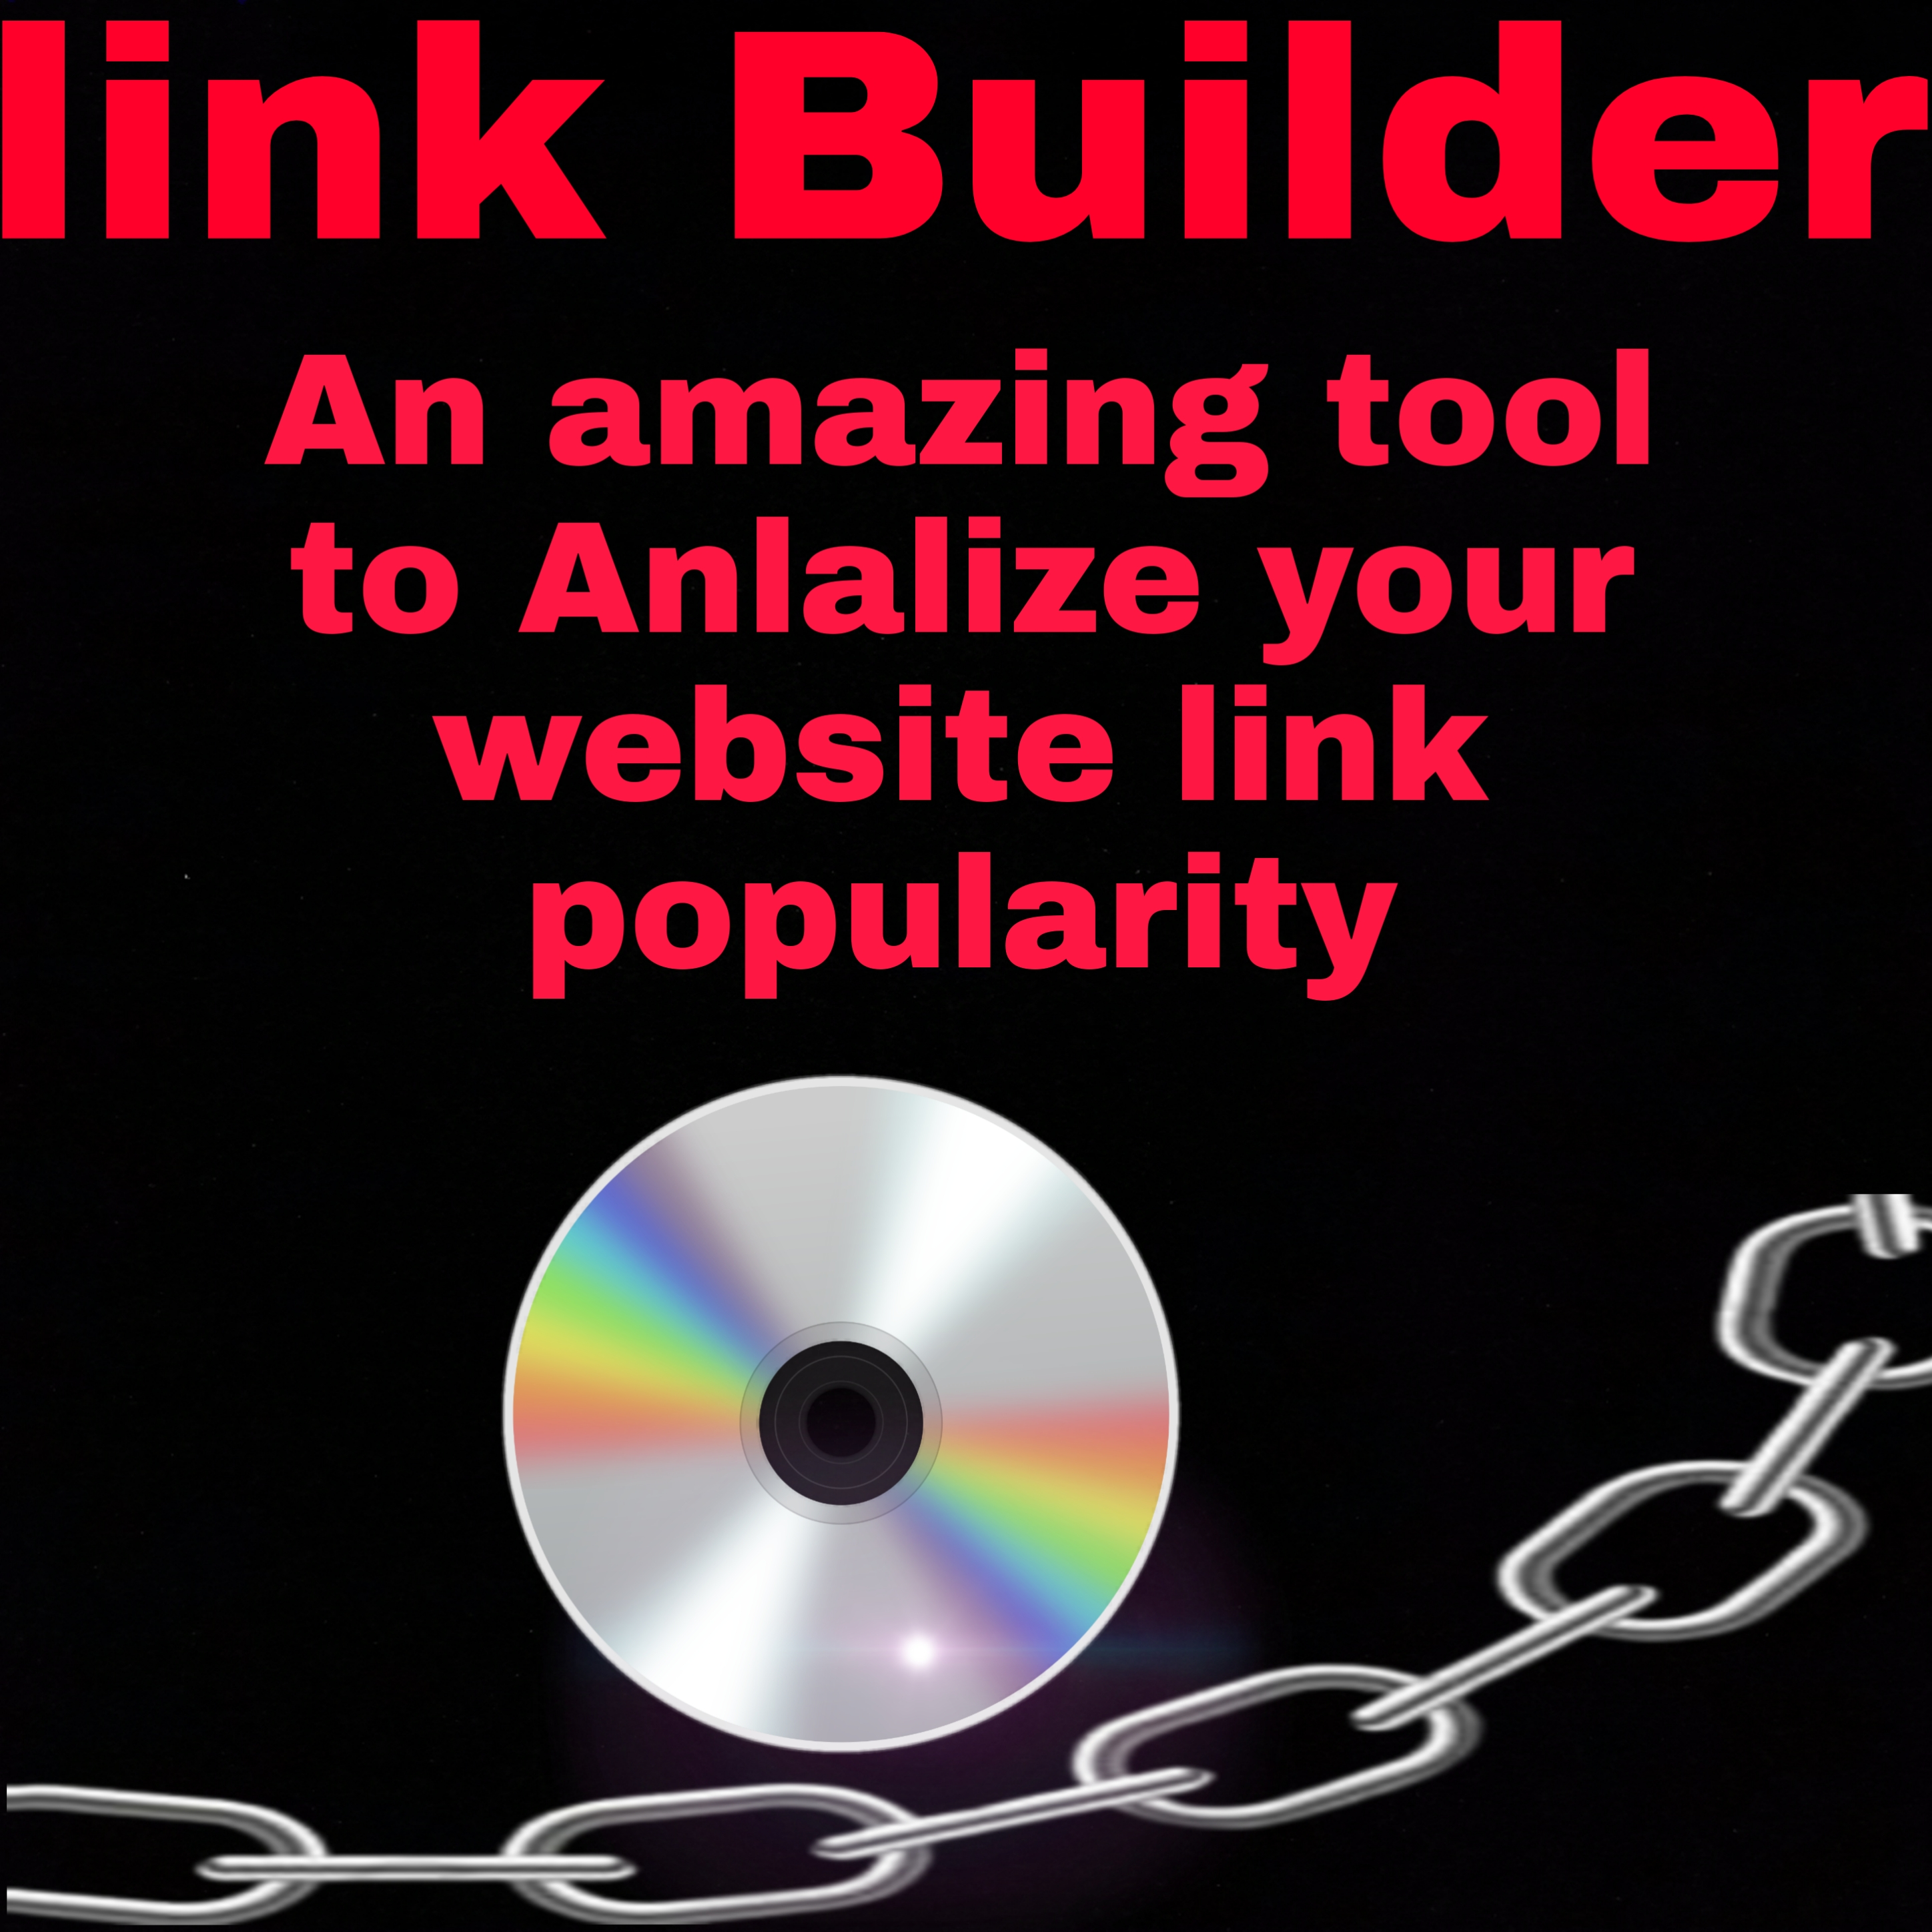 Link Builder and anlalize your website link popularity